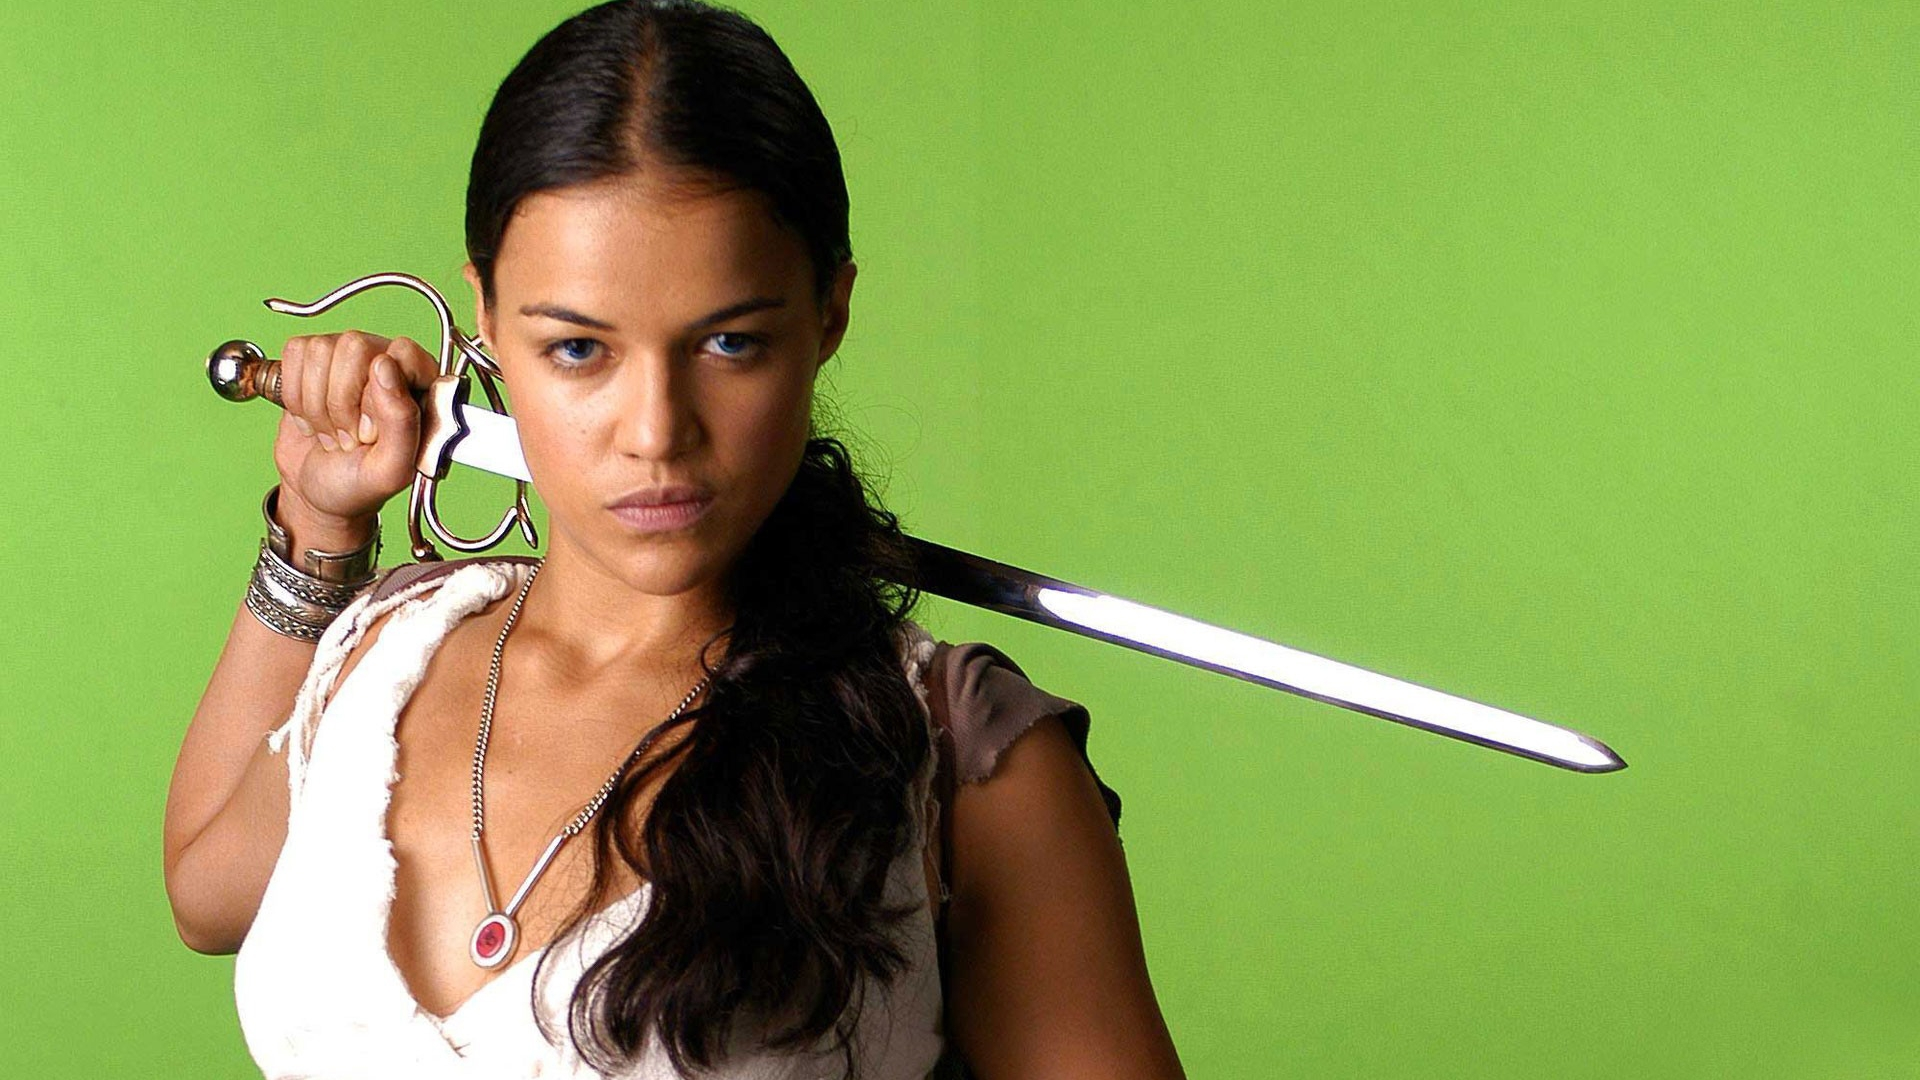 1920x1080 - Michelle Rodriguez Wallpapers 28